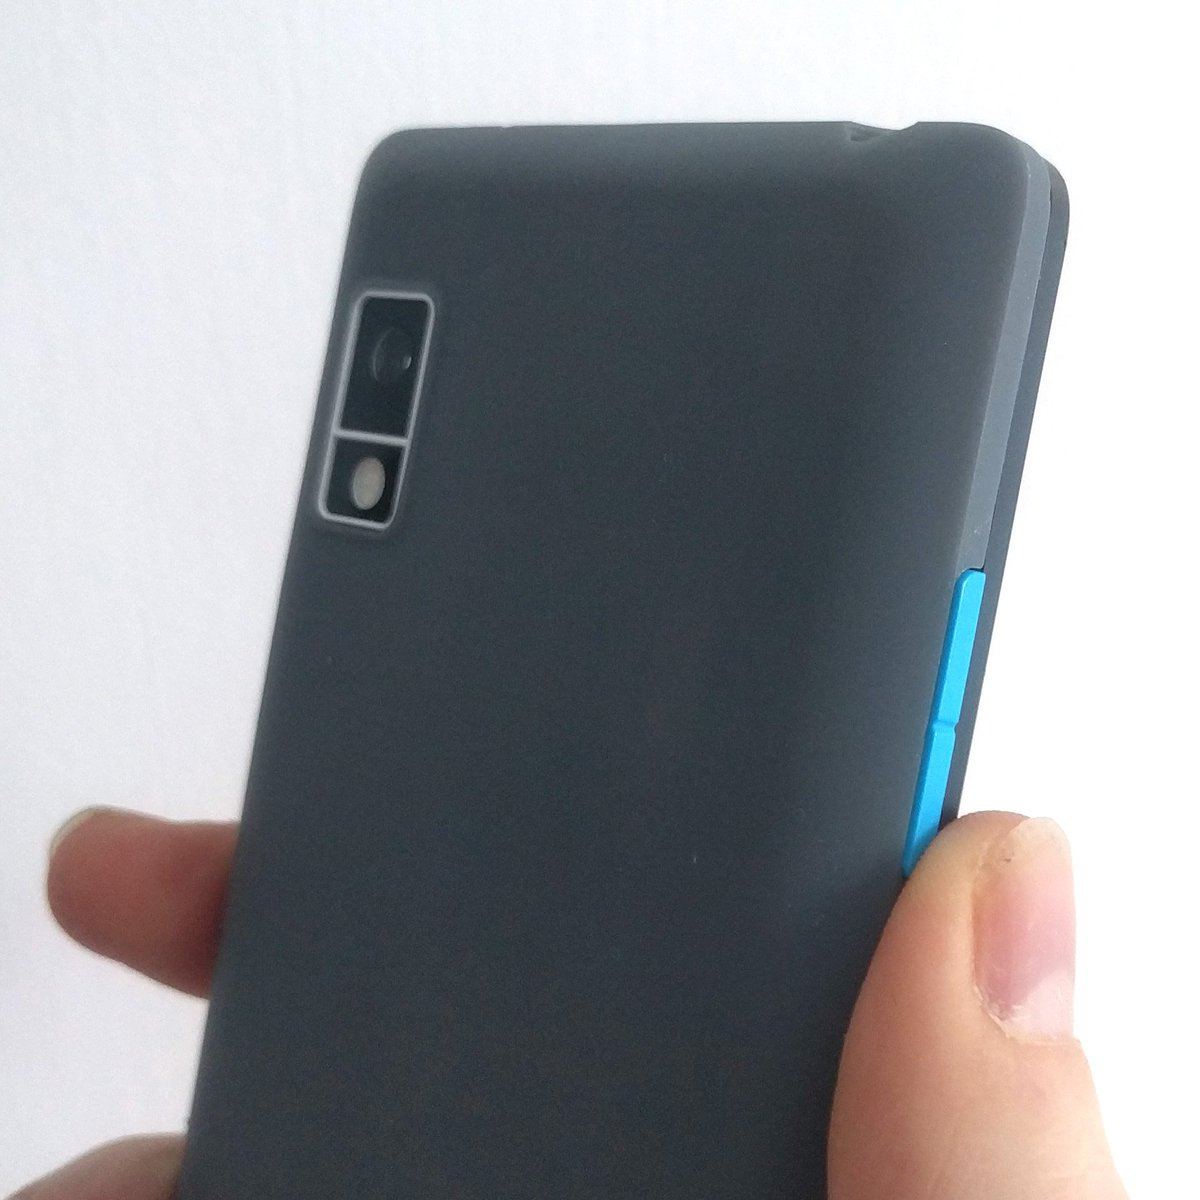 huge selection of 43e91 86611 Fairphone on Twitter: